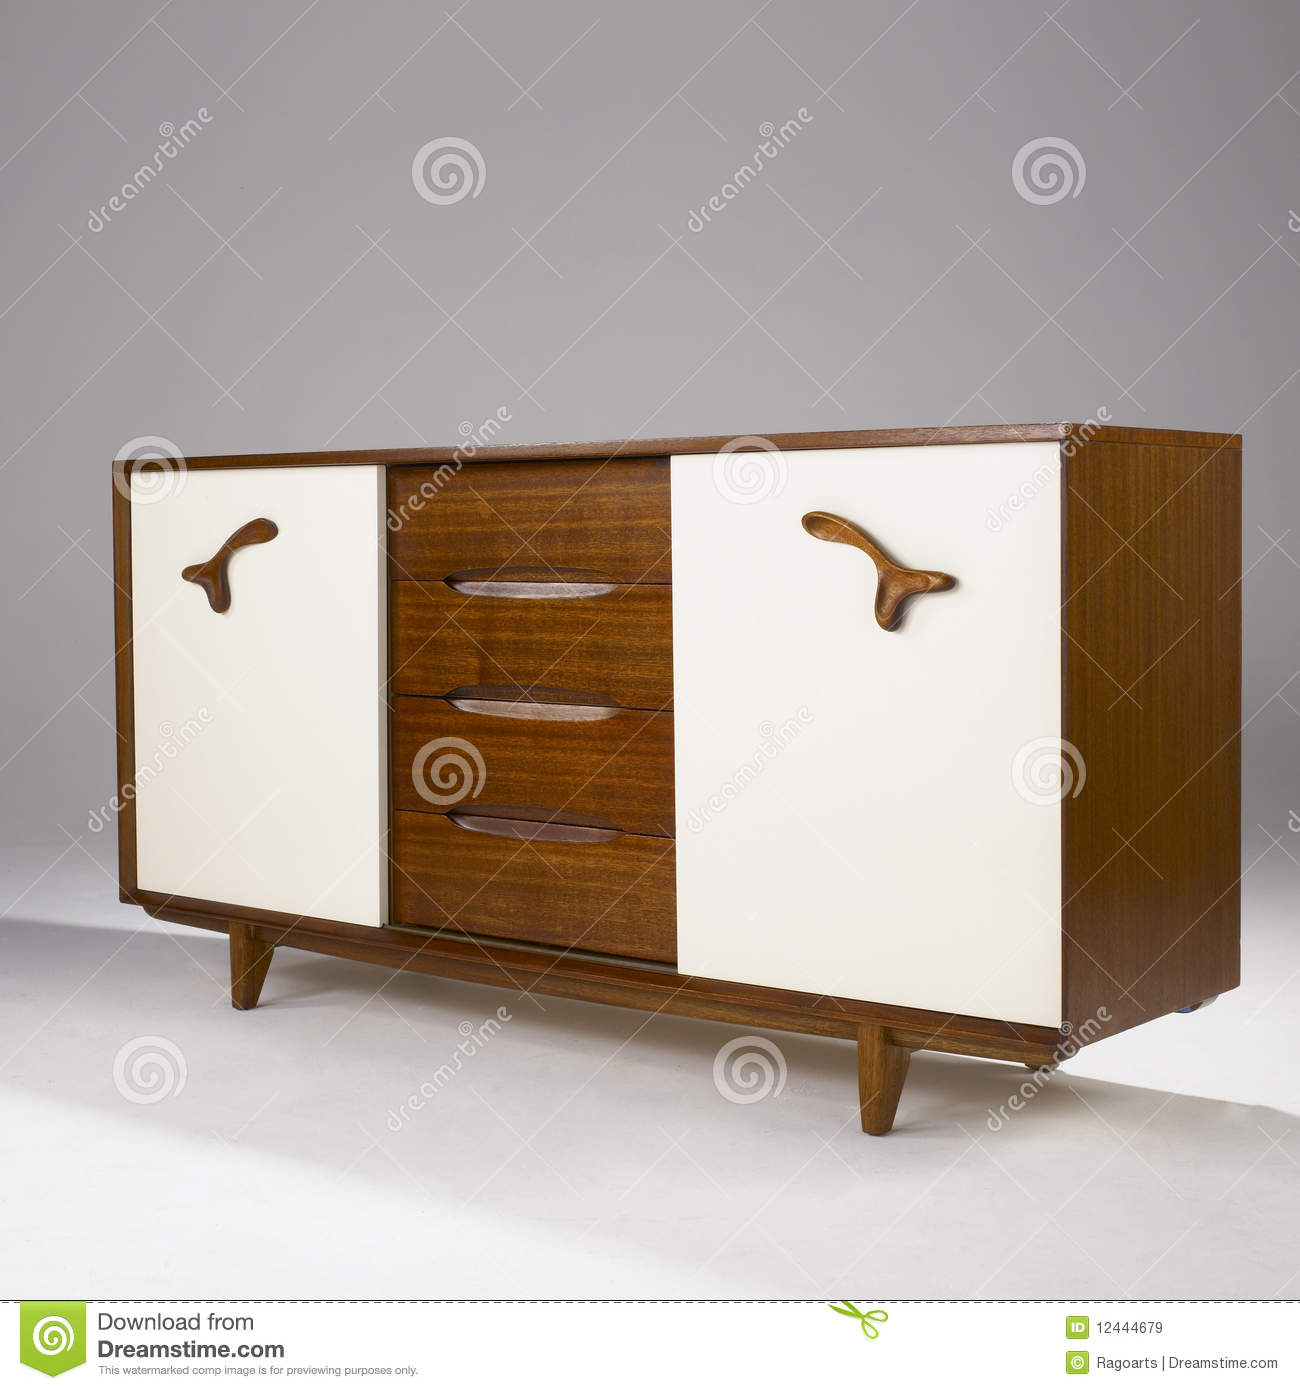 modern style chest of drawers editorial photo  image  - modern style chest of drawers royalty free stock images